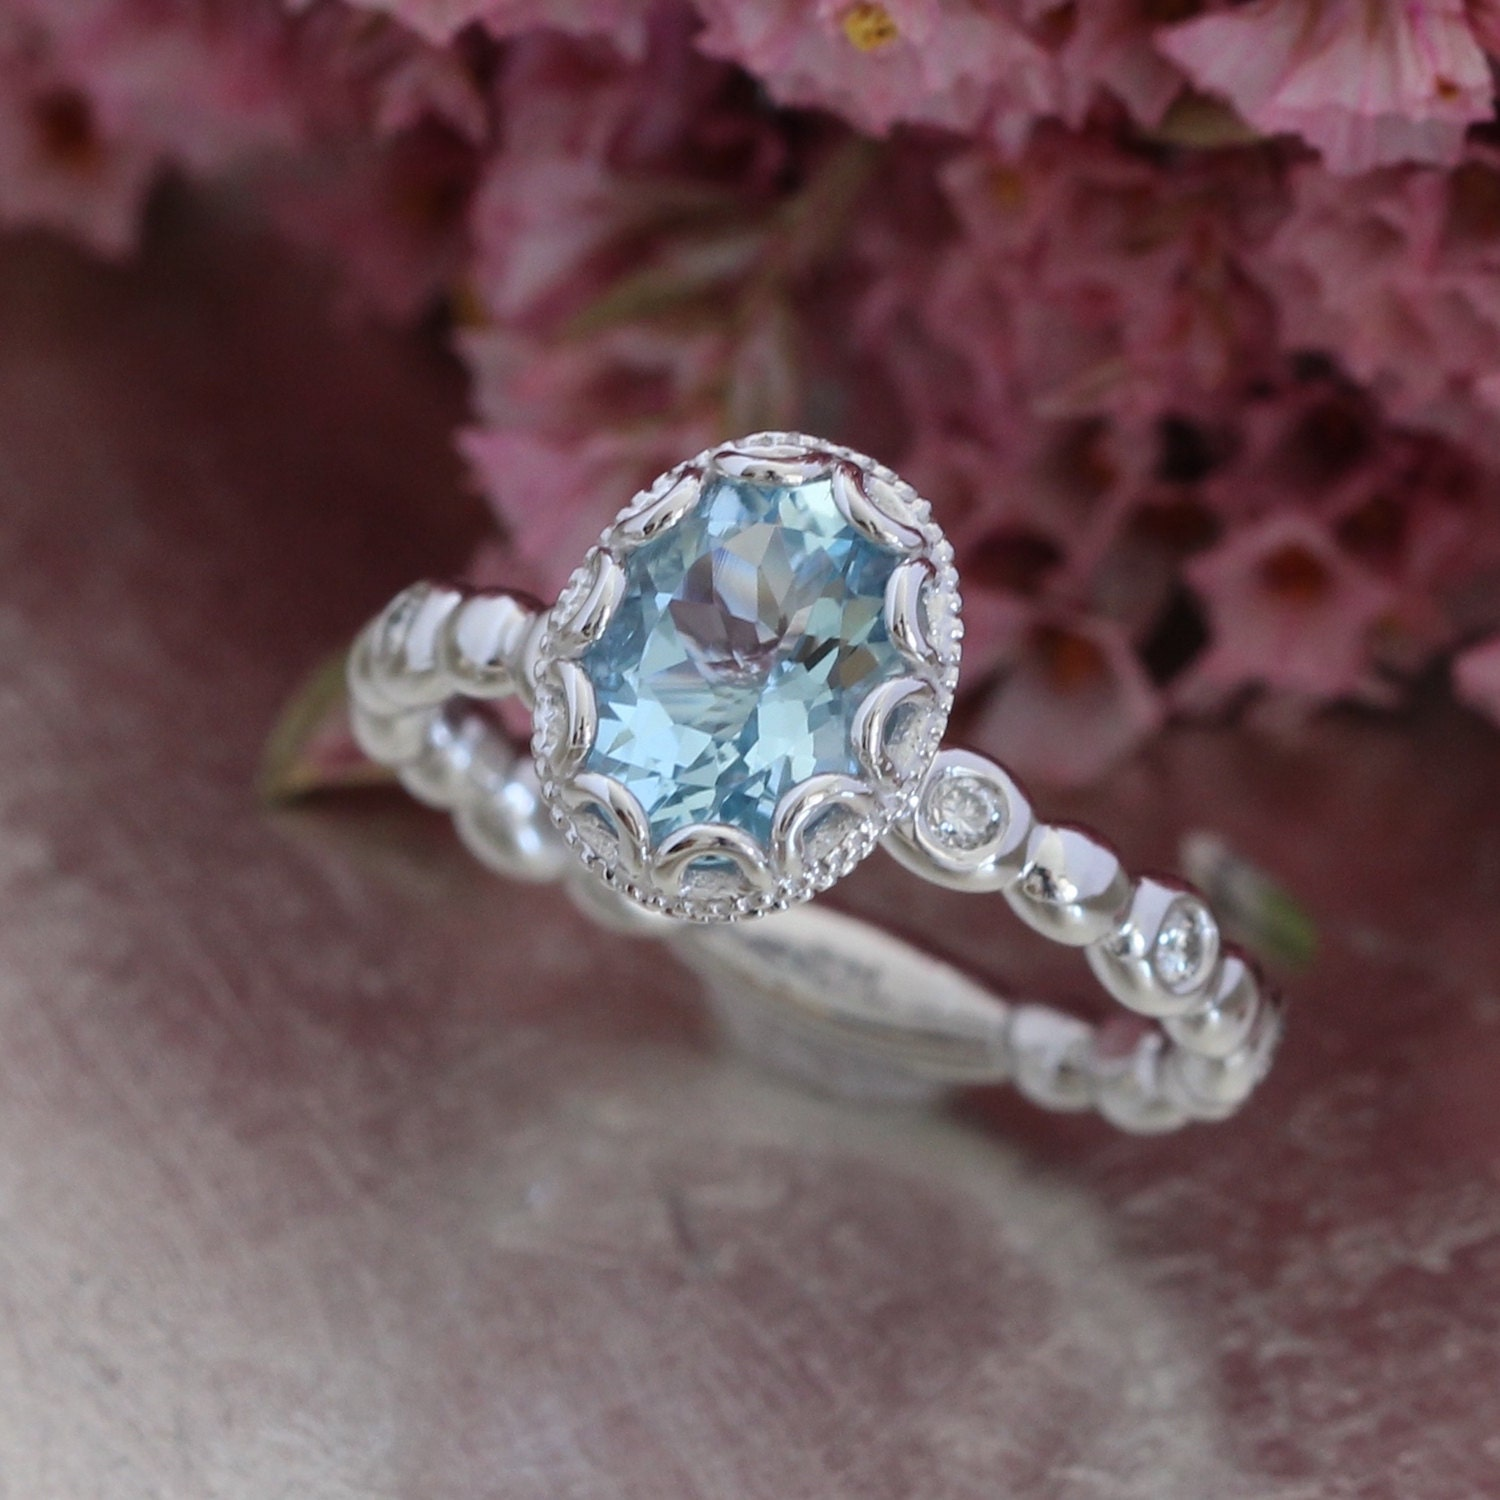 products flower second hand diamond and collection fifth jewellery the ring aquamarine sapphire